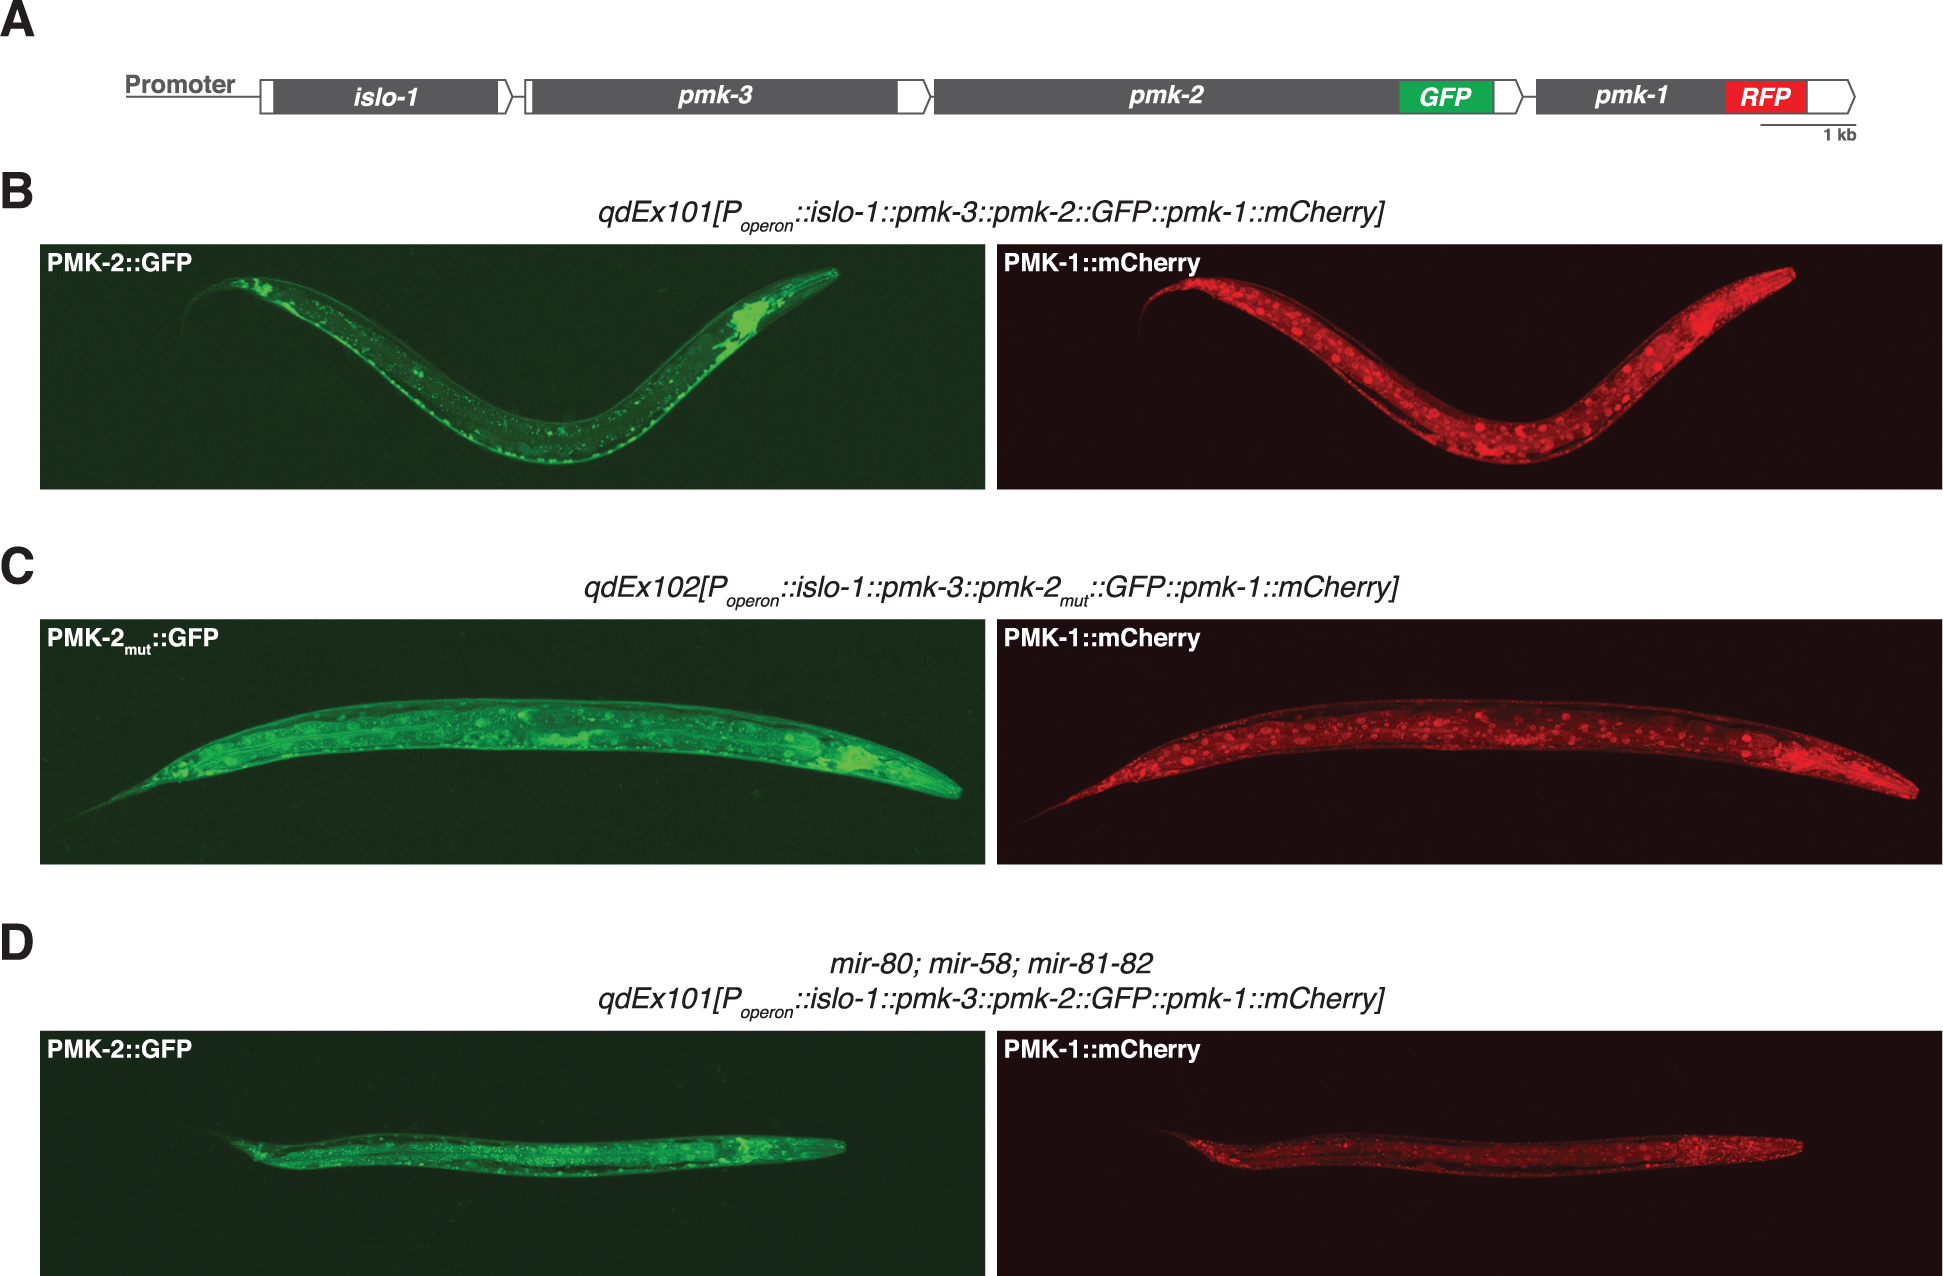 Distinct tissue expression patterns of <i>pmk-1</i> and <i>pmk-2</i>.